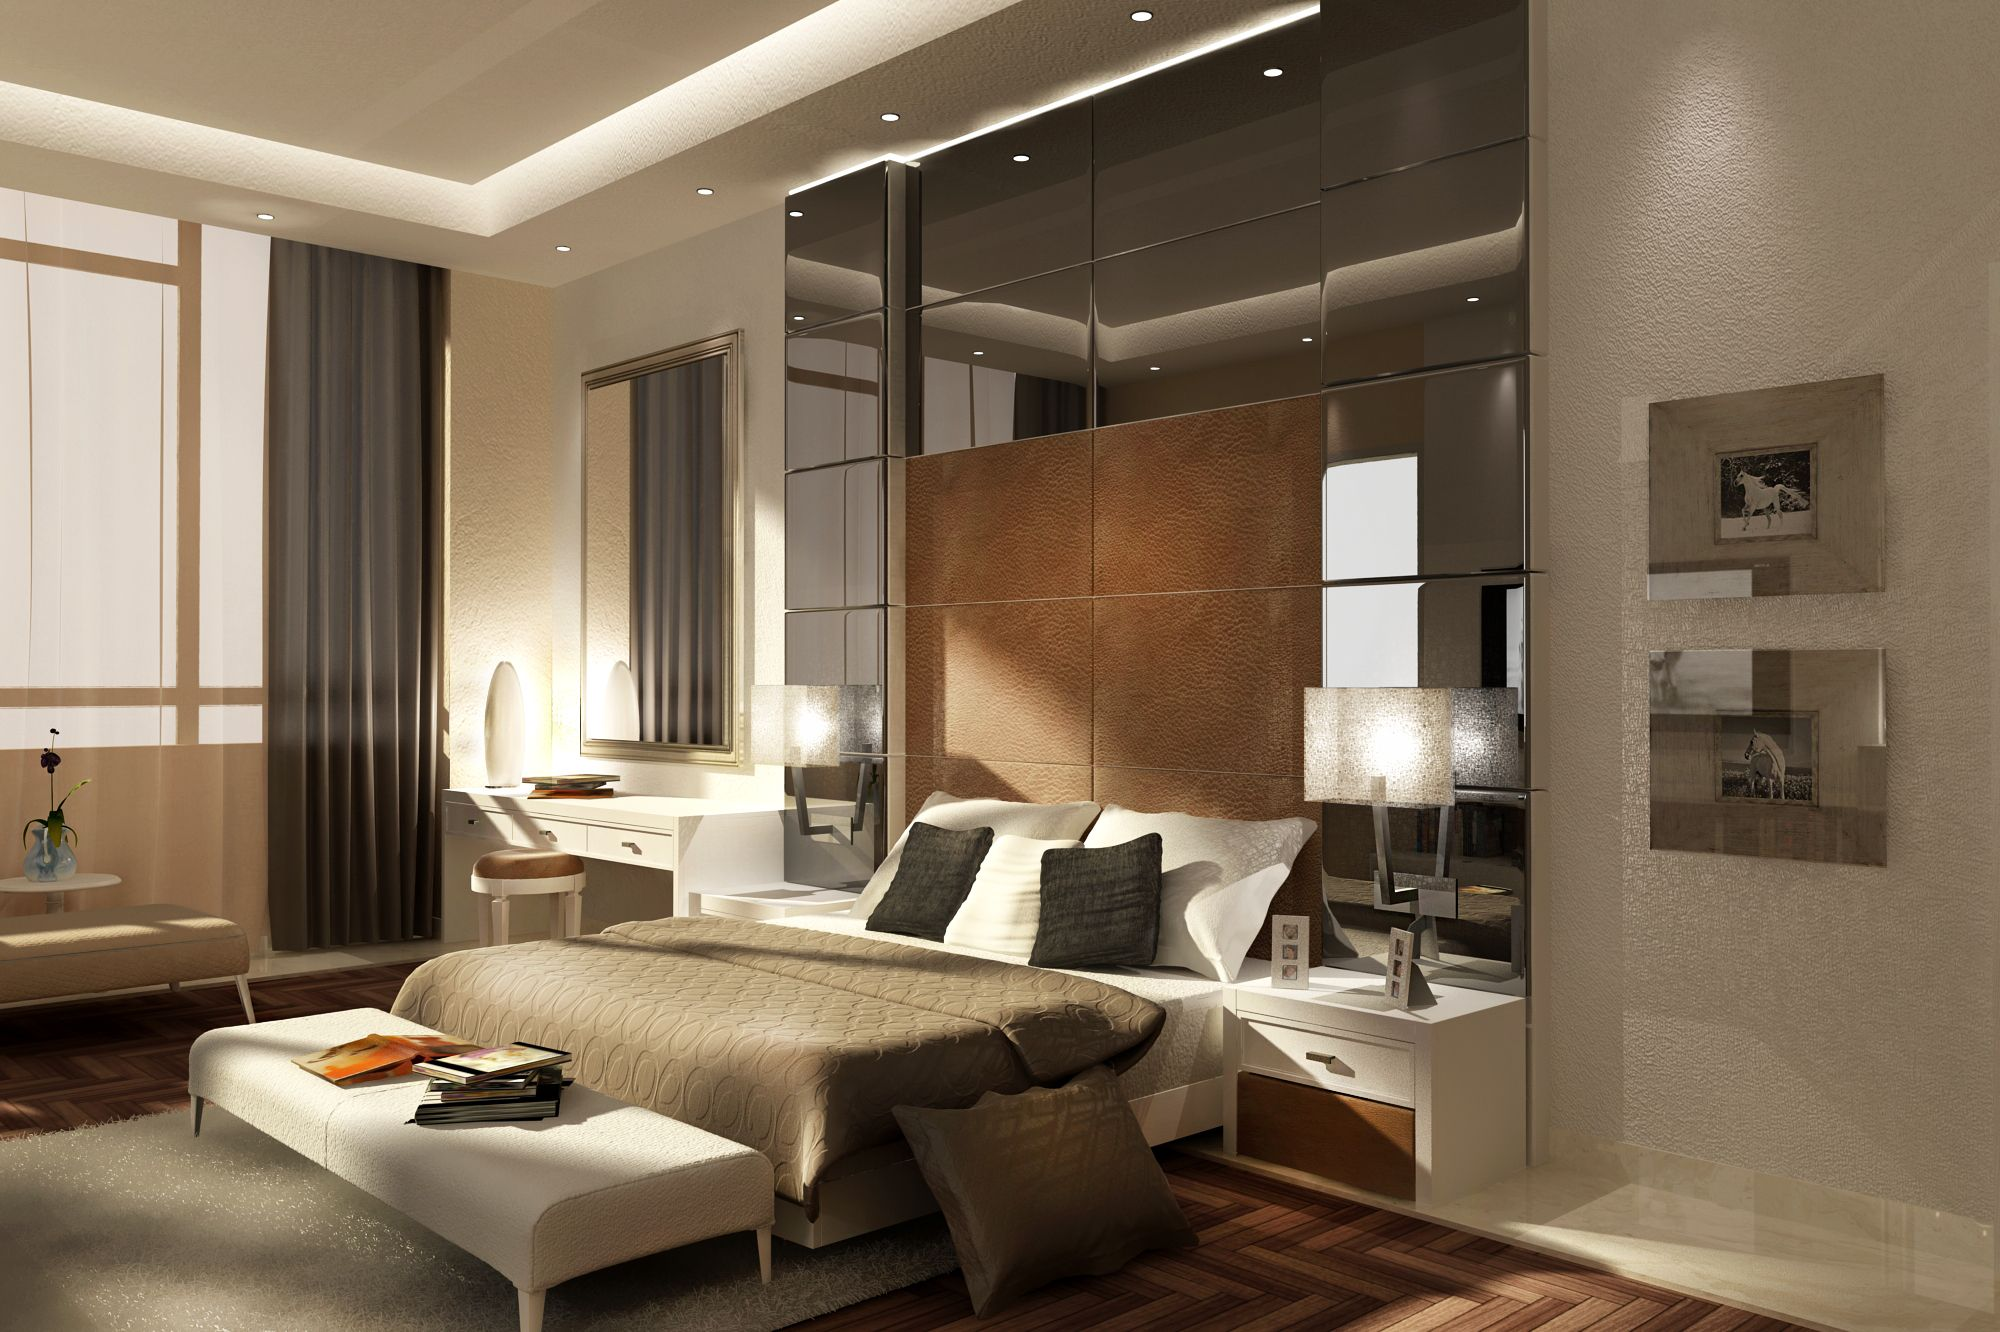 3d render 3d max interior design bedroom design modern master bedroom the art of bedrooms - Interior designing bedroom ...